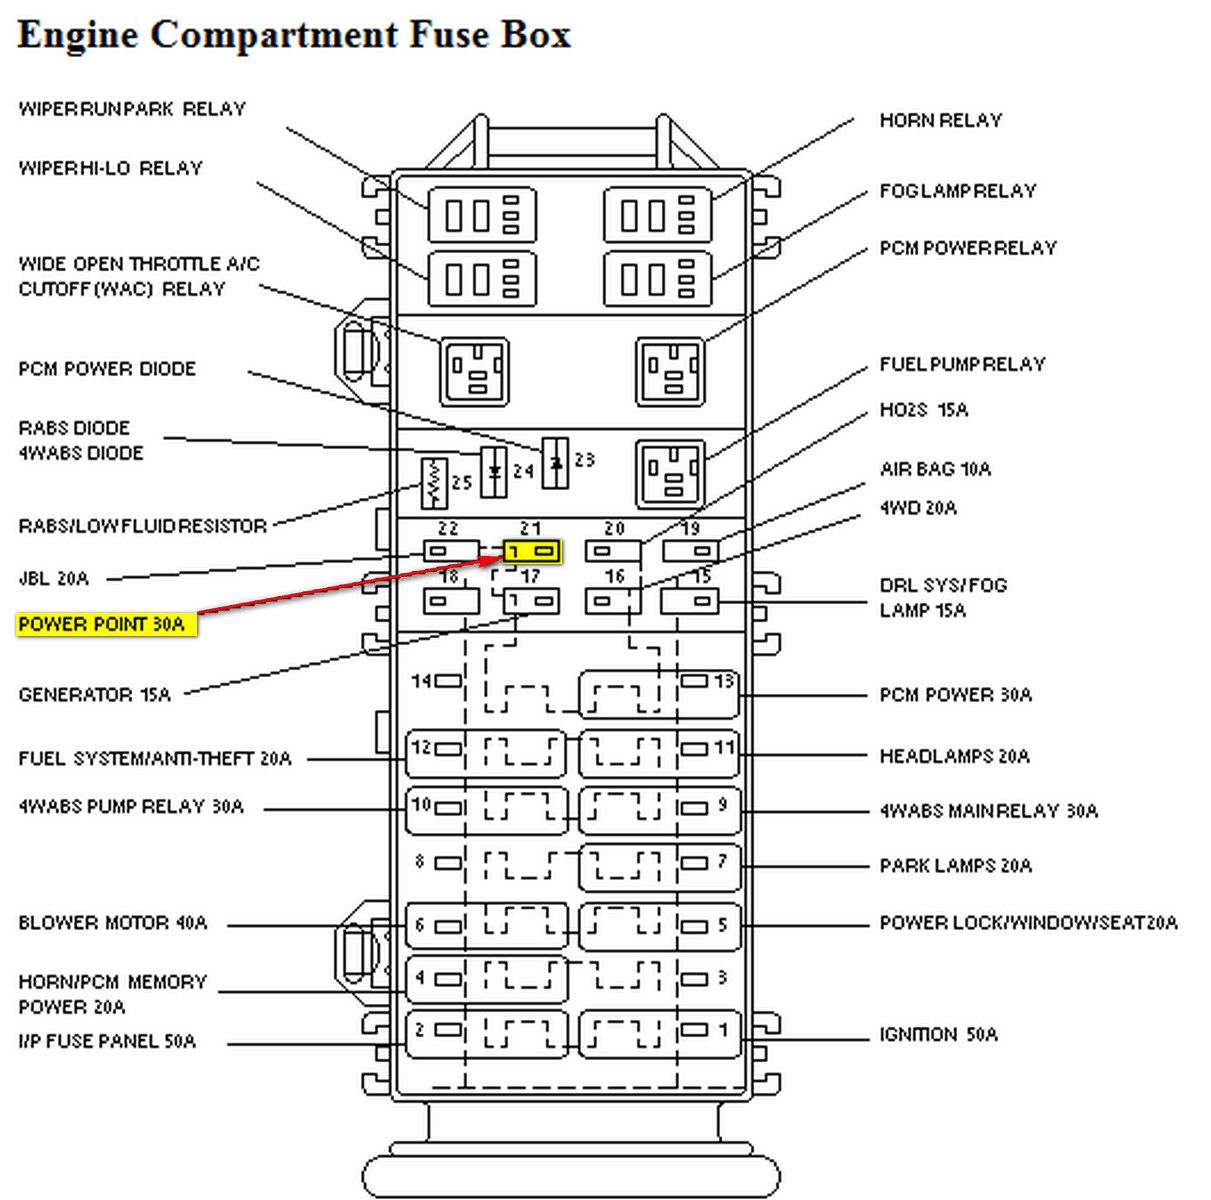 hight resolution of 2002 ford ranger fuse diagram 1997 ford ranger fuse box diagram fuse box diagram for 1997